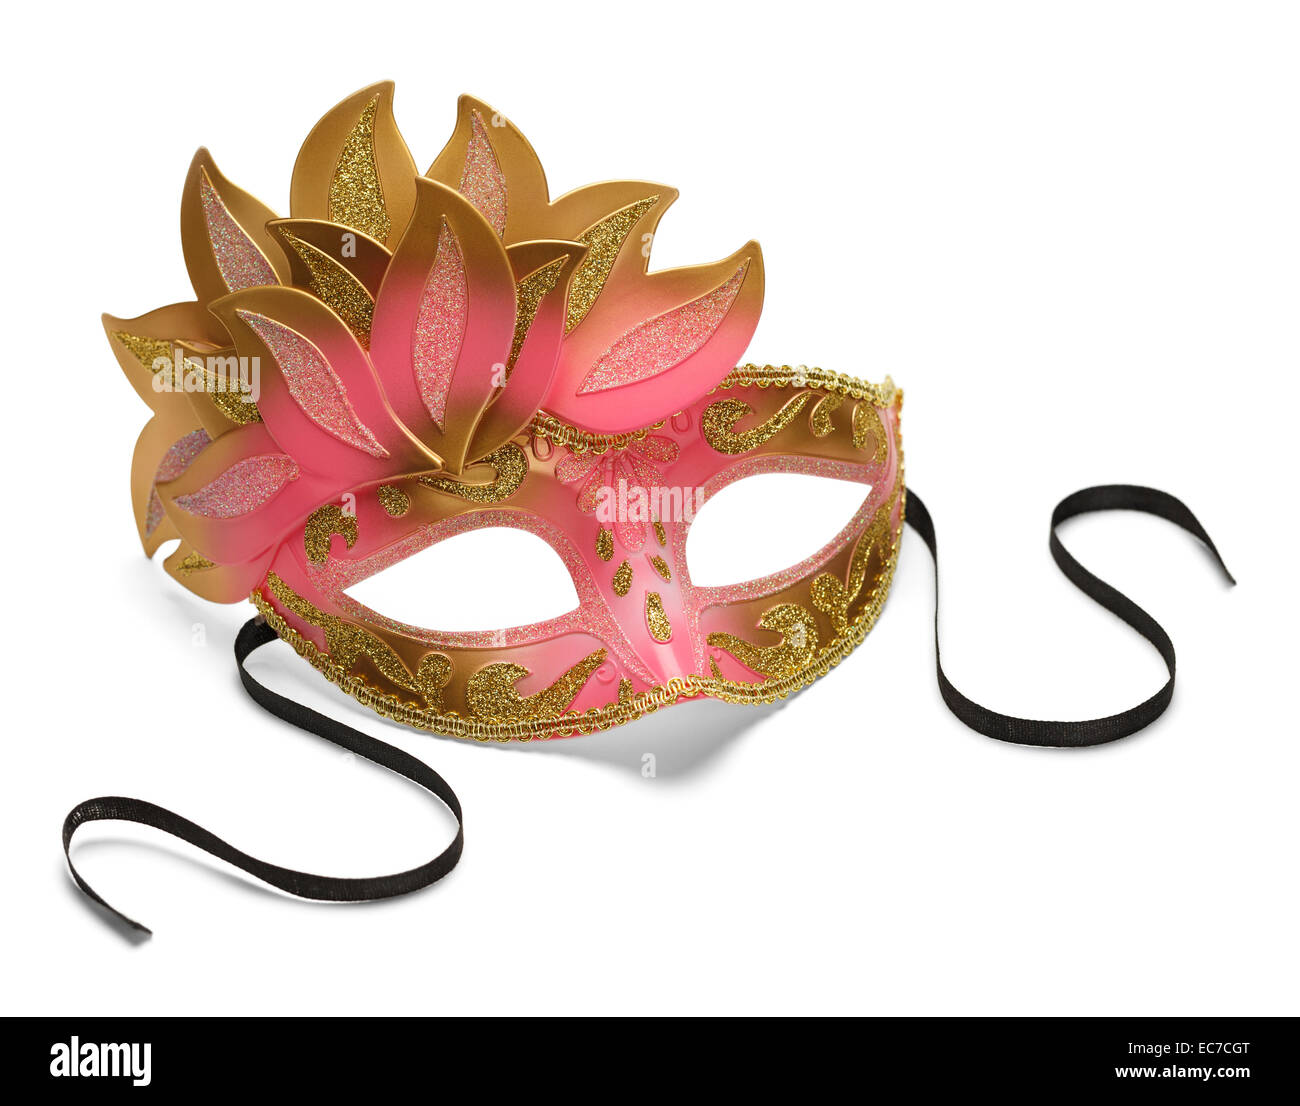 Pink and Gold Feathered Venetian Mask Isolated on White Background. - Stock Image